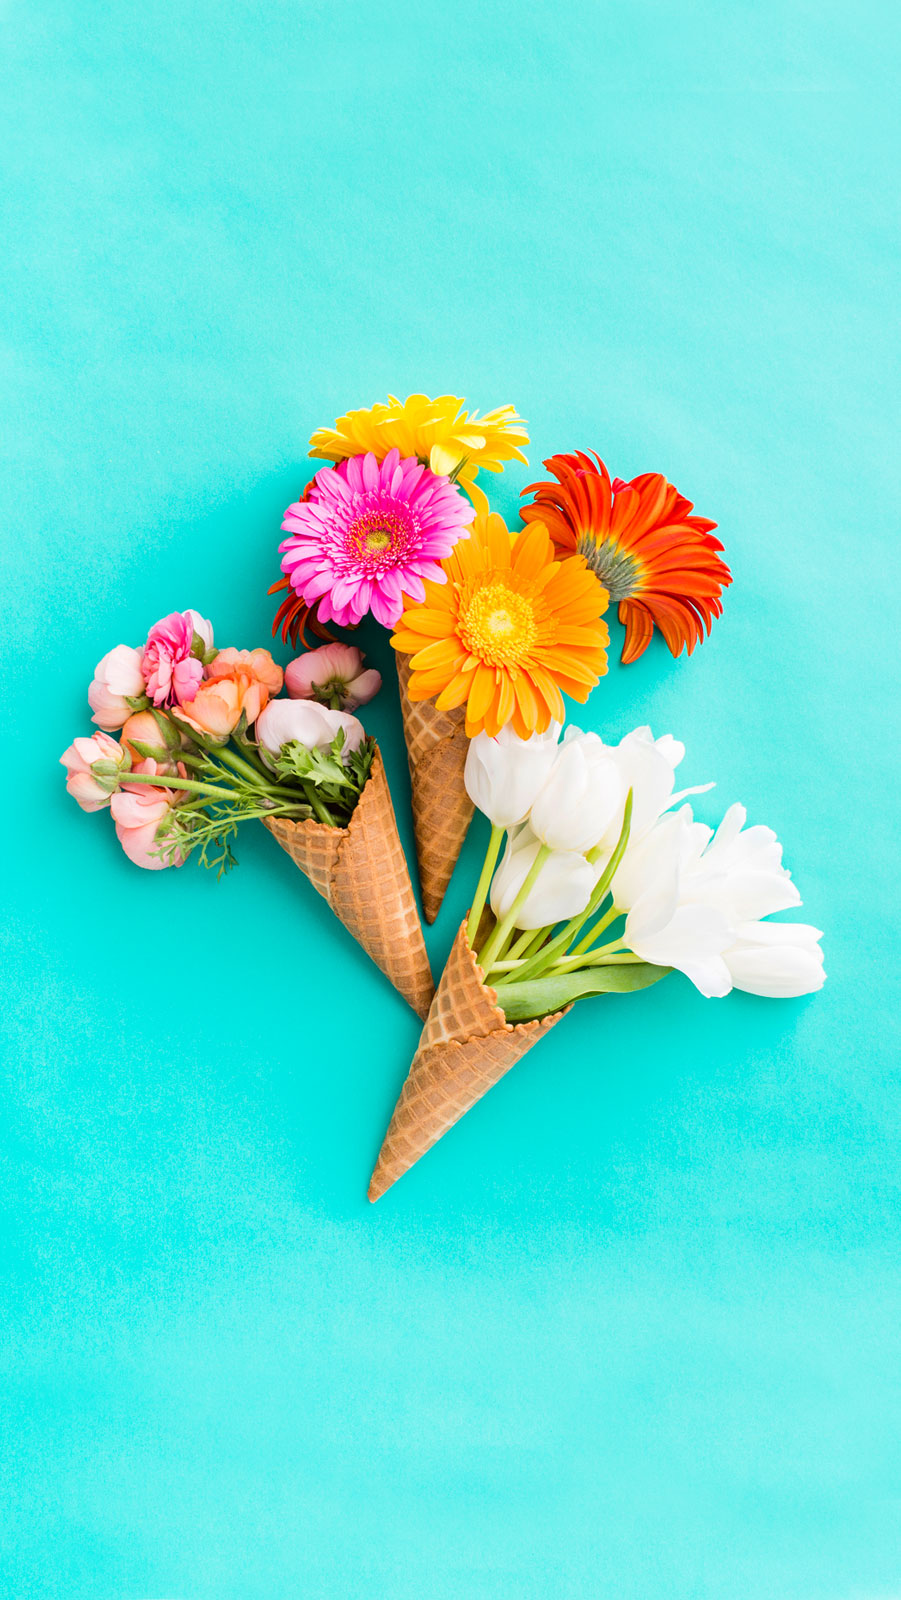 Colorful tumblr wallpaper iphone - Download Floral Bunch Of Ice Cream Cones